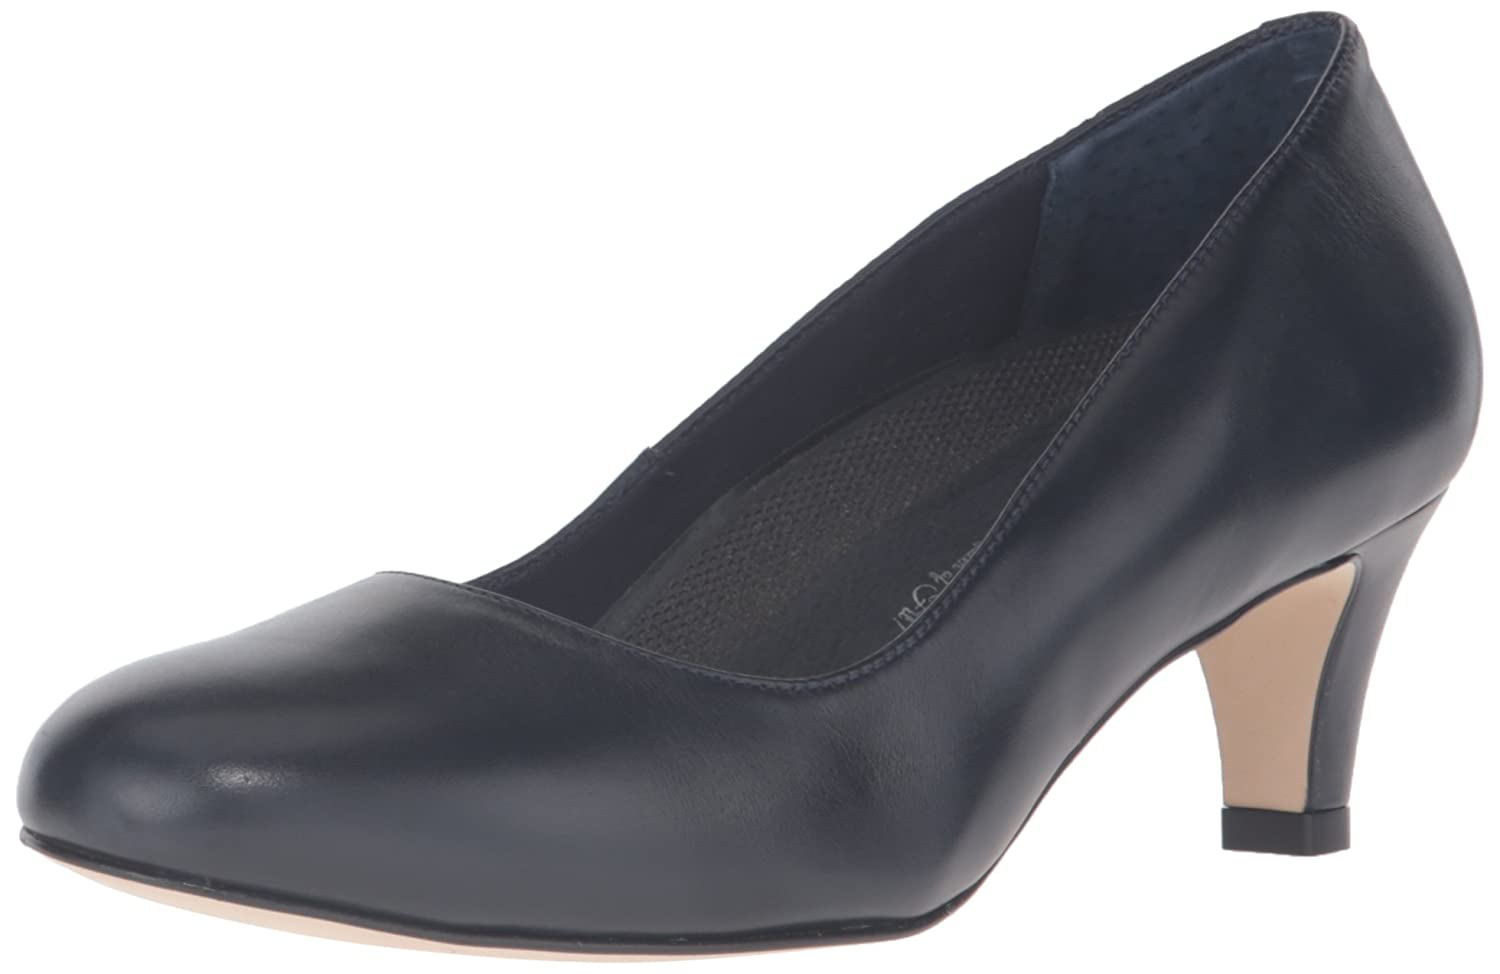 Walking Cradles Women's Joy Dress Pump B01KSFVYYM 12 C/D US|Navy